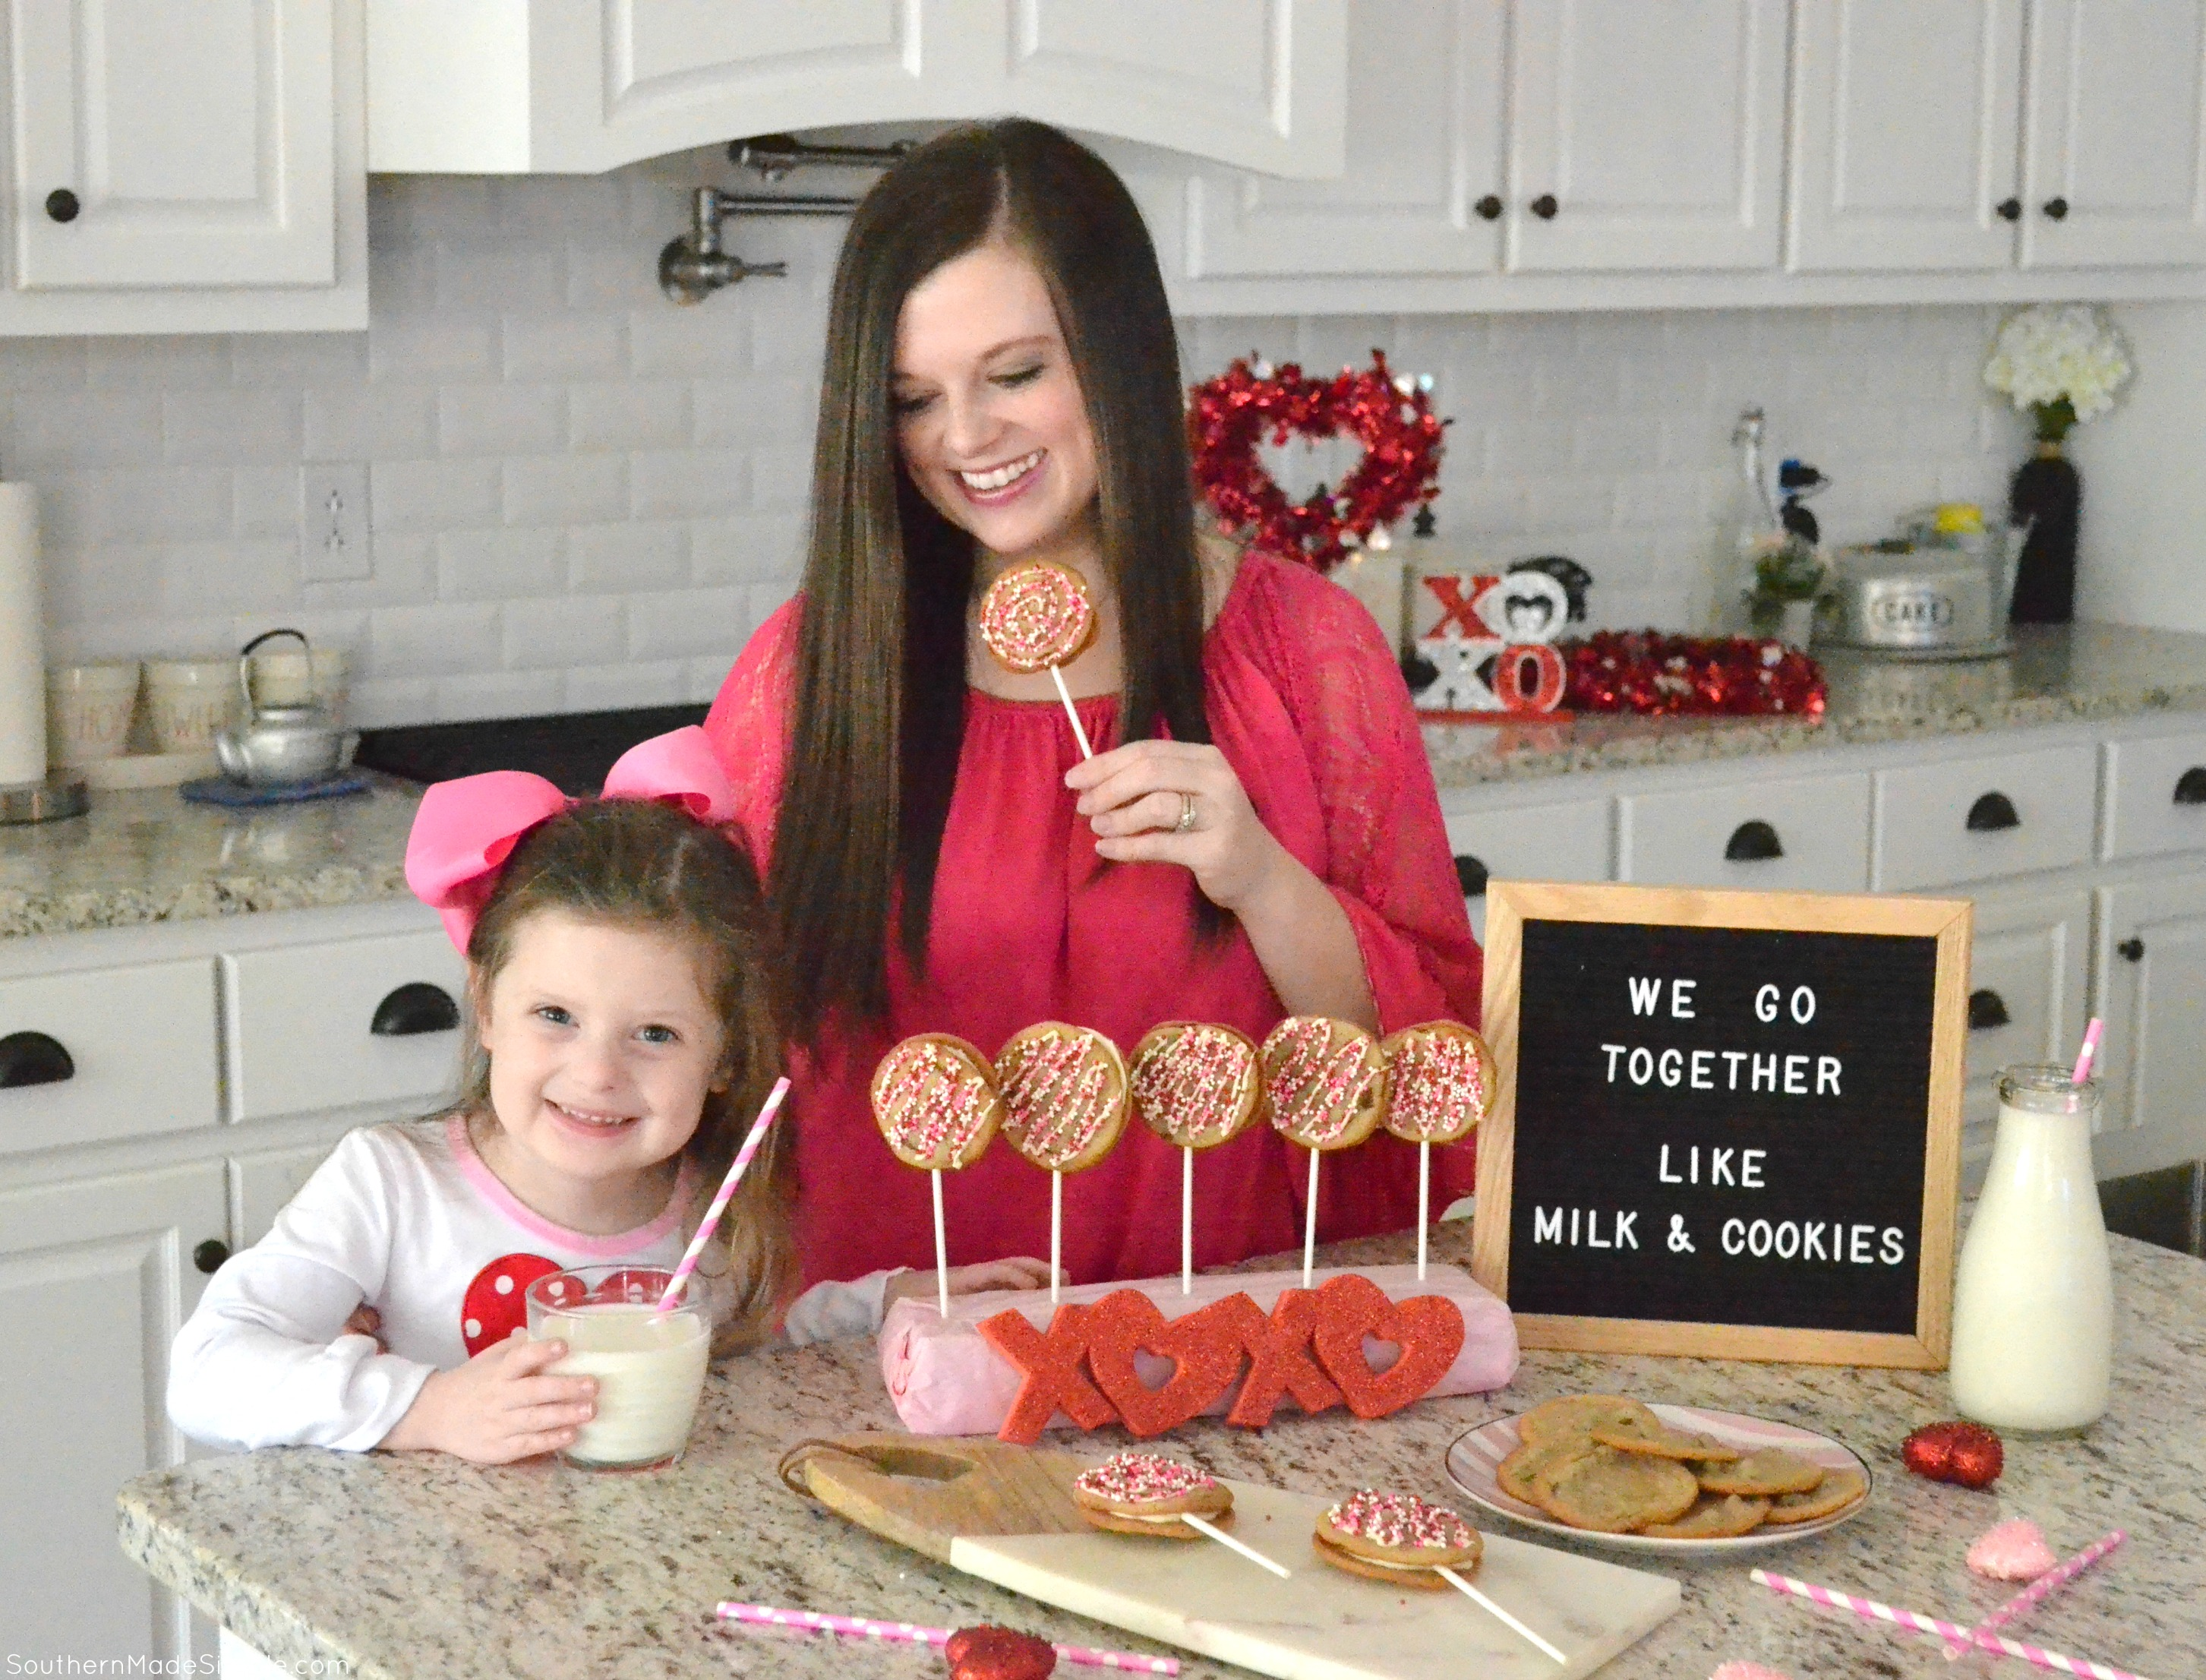 We Go Together Like Milk & Cookies - DIY Chocolate Chip Cookie Pops